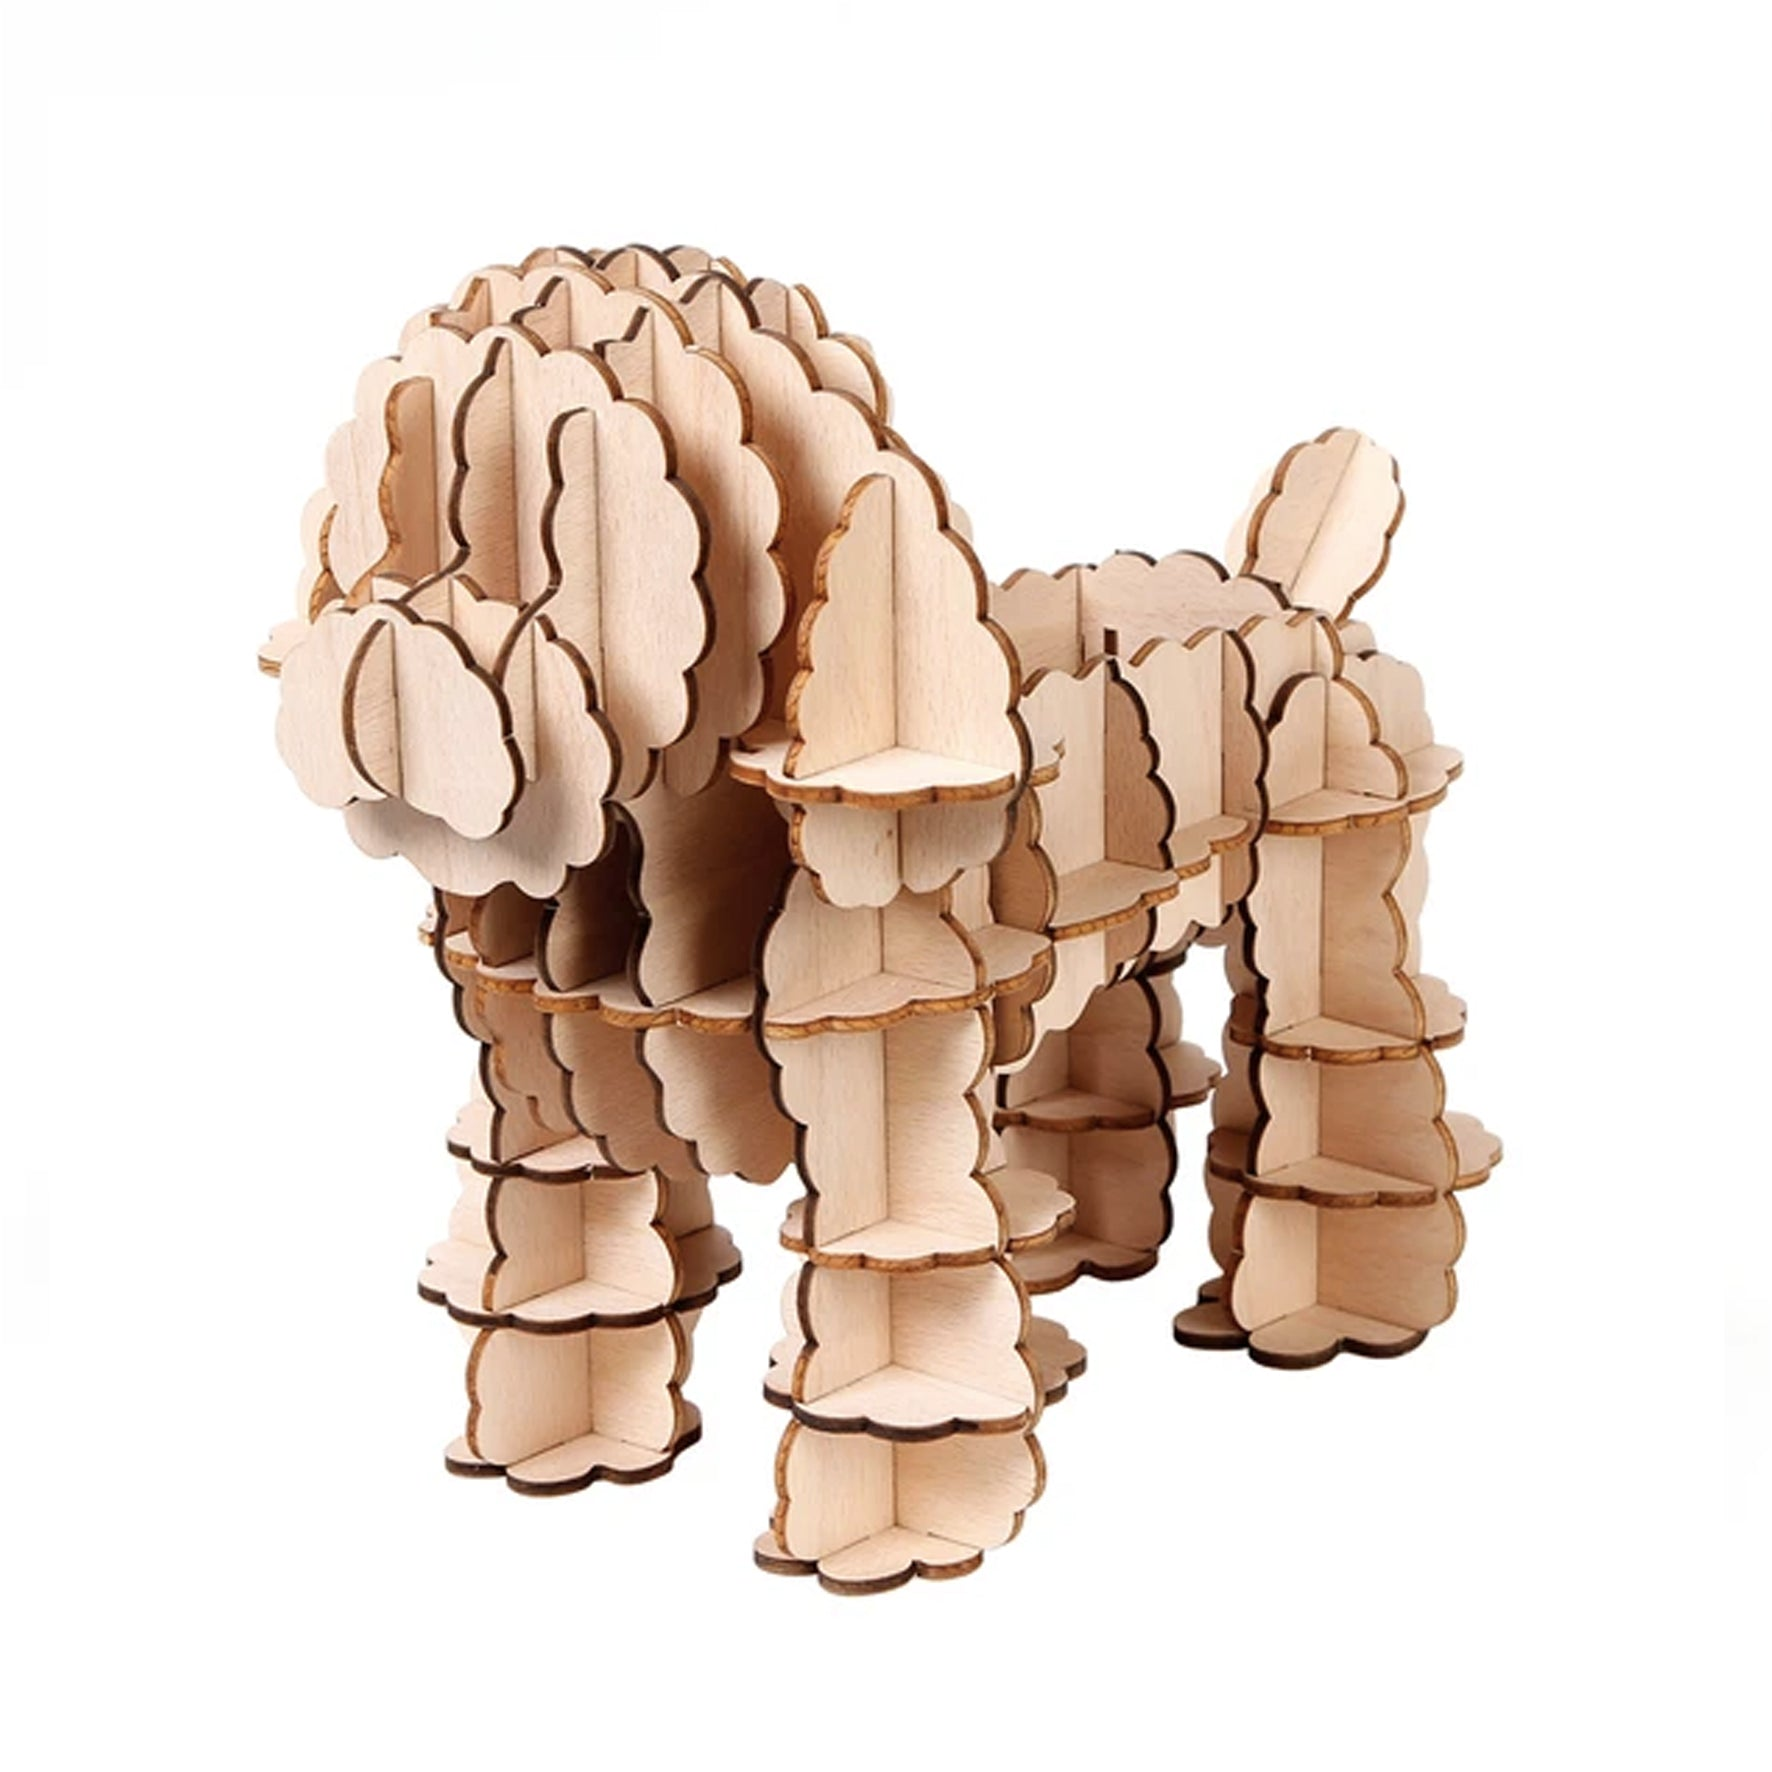 Puzzle 3D madera Jigzle – Poodle toy